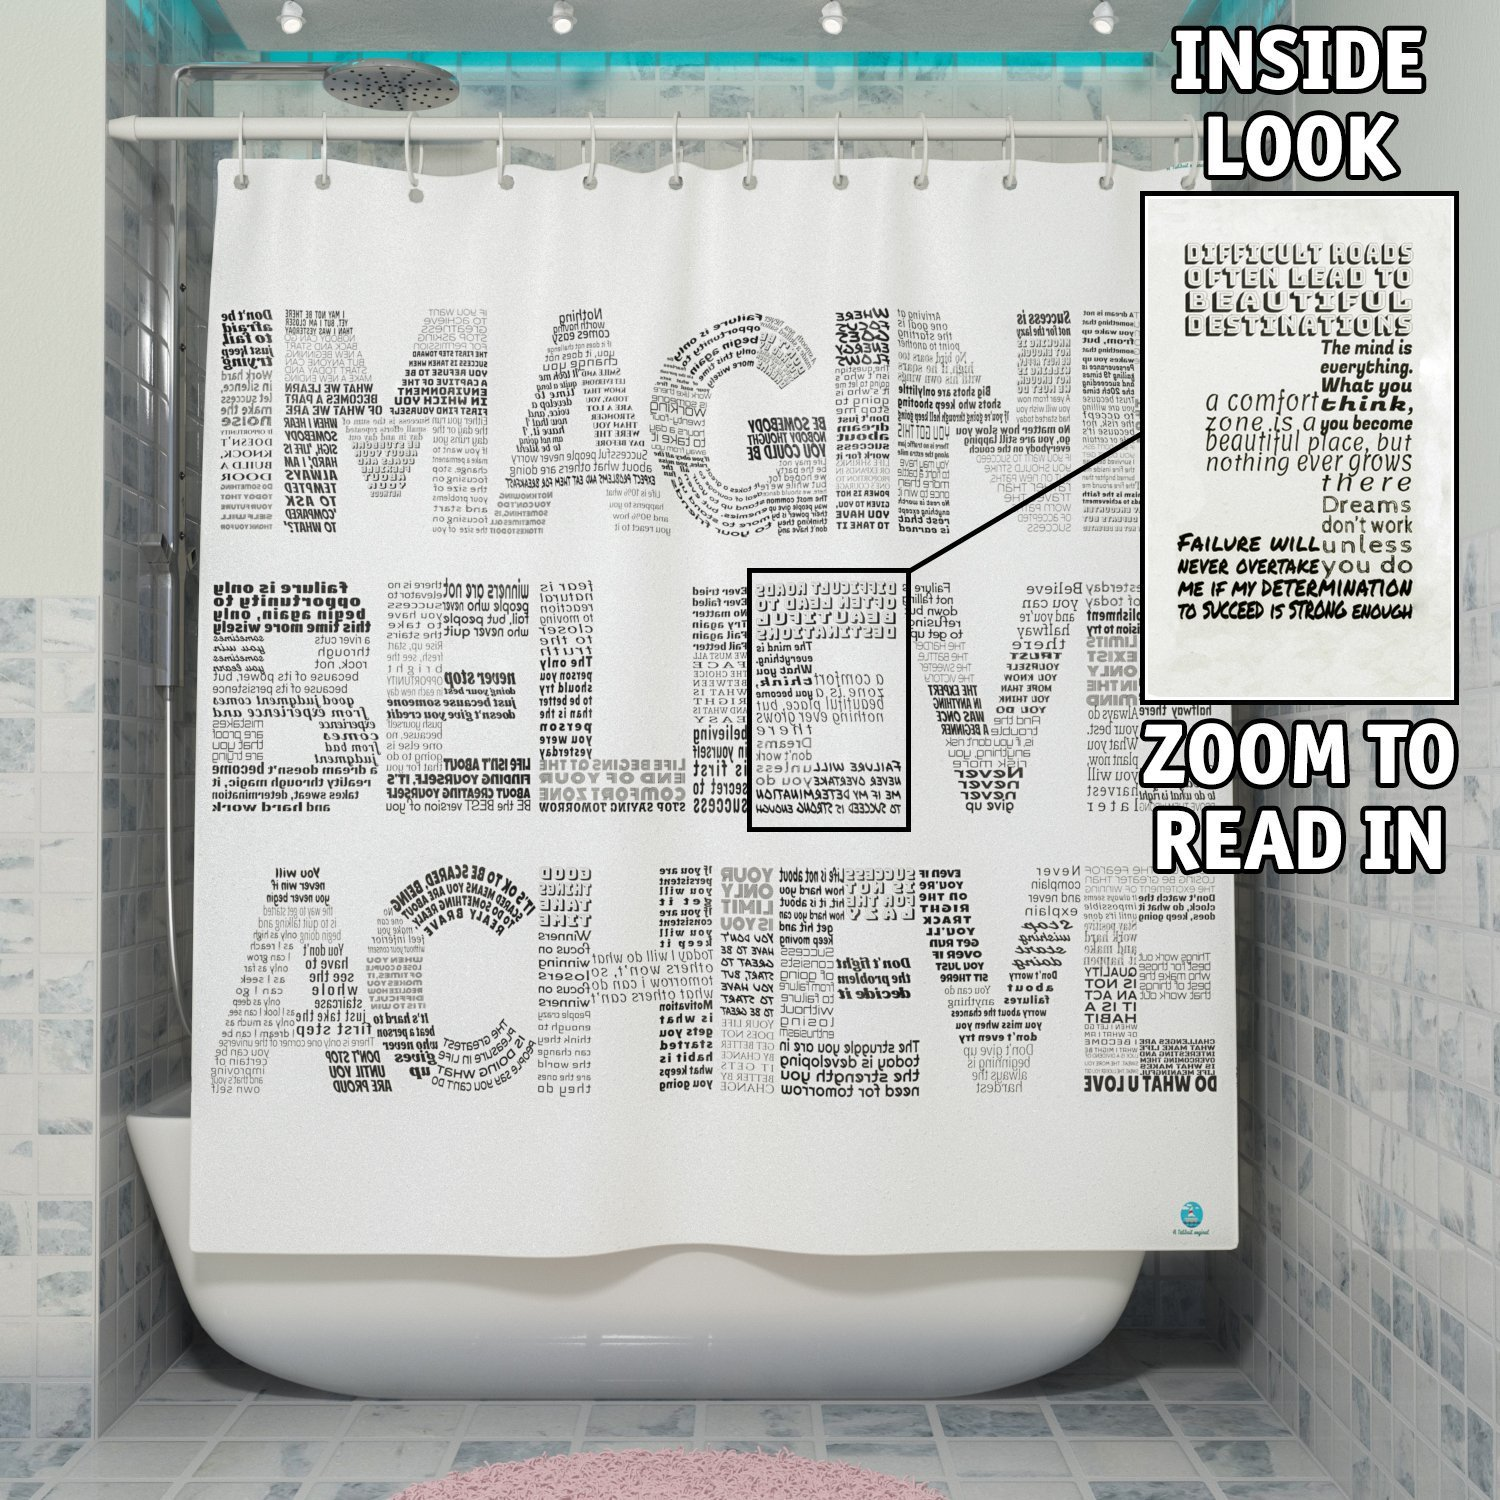 Motivational 2in1 Shower Curtain by TubSail - Read In – 145 Quotes, Motivational tool & Shower Curtain, Positive Vibes, Gym Shower Curtain, Black and White, Unique Design, Good Vibes